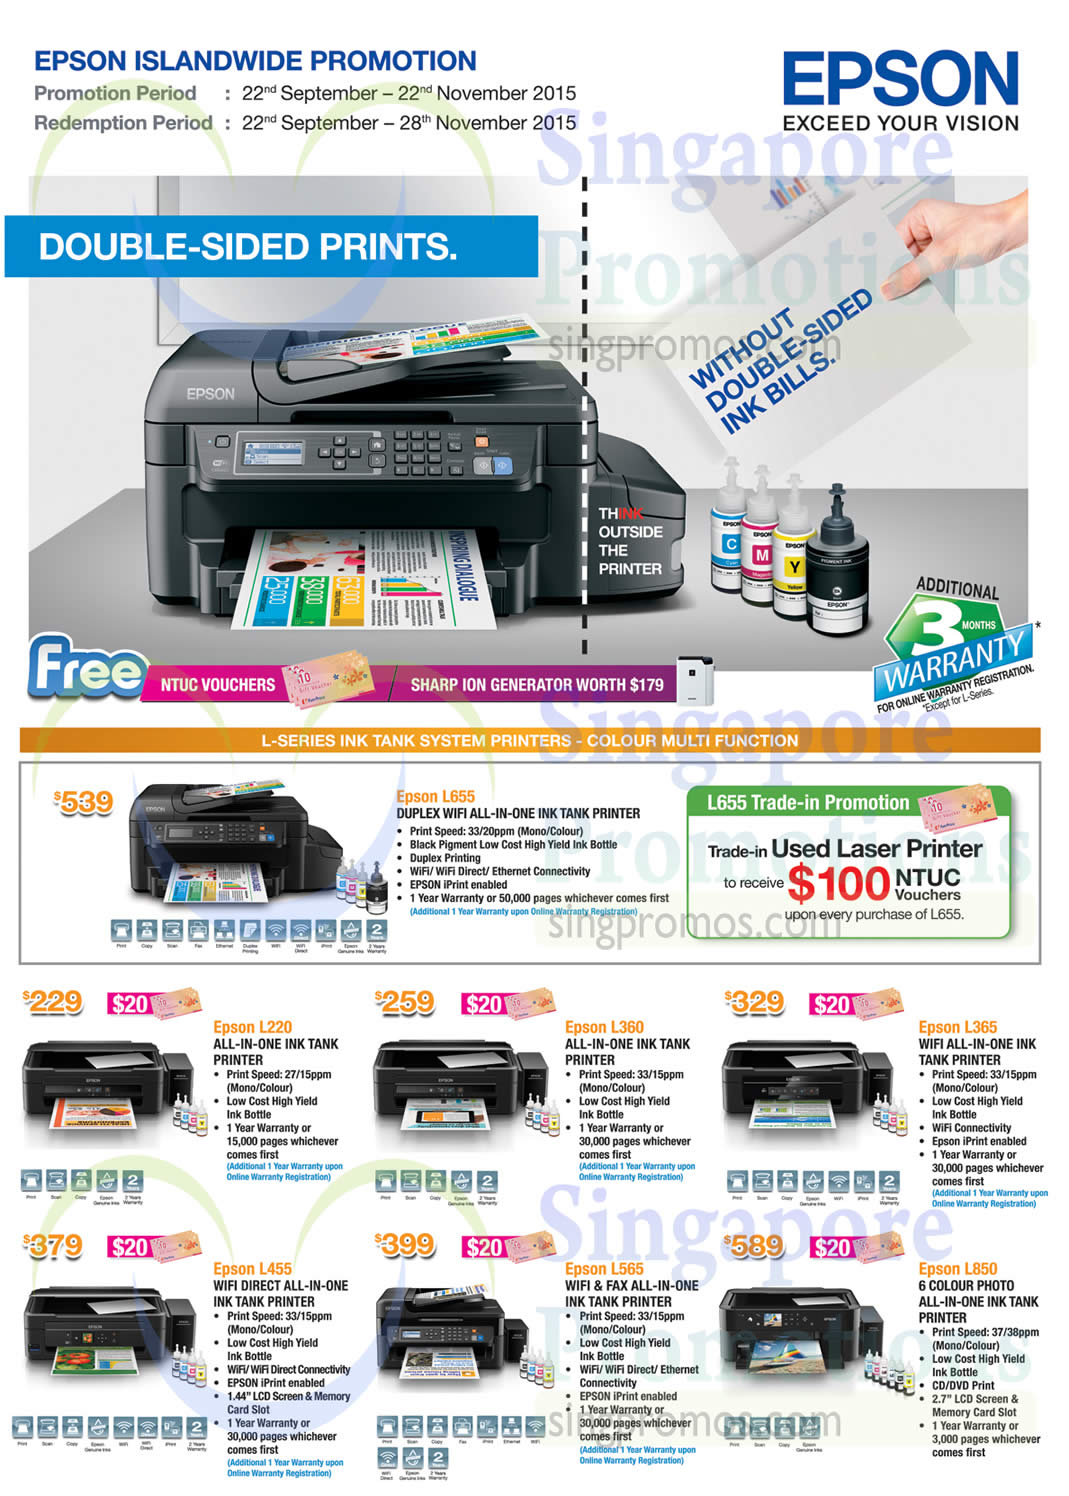 List Of Epson L1300 Printer Related Sales Deals Promotions News Printers Scanners More Offers 26 Sep 22 Nov 2015